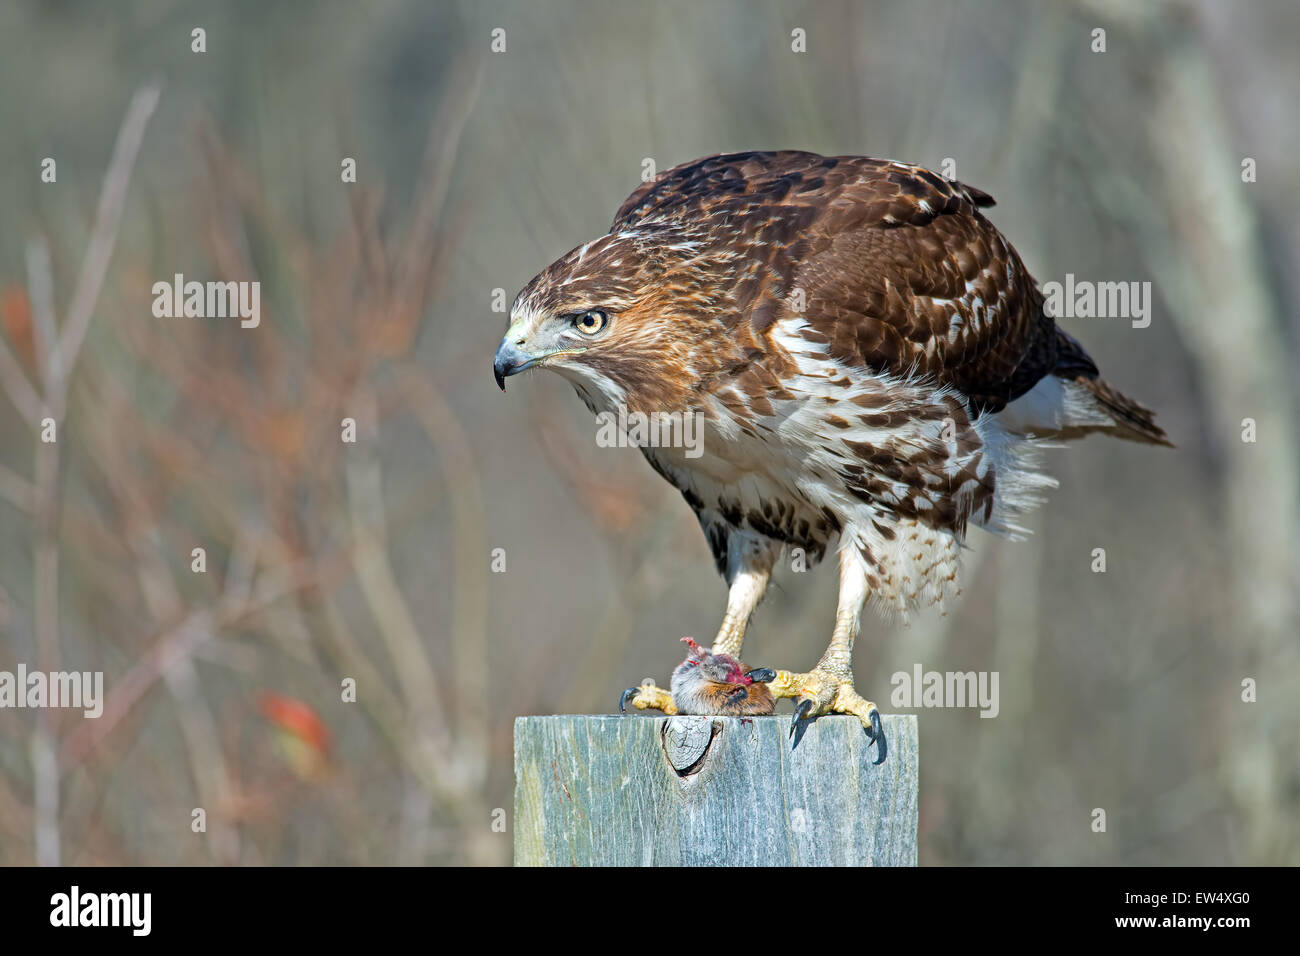 Red-tailed Hawk Eating Prey - Stock Image